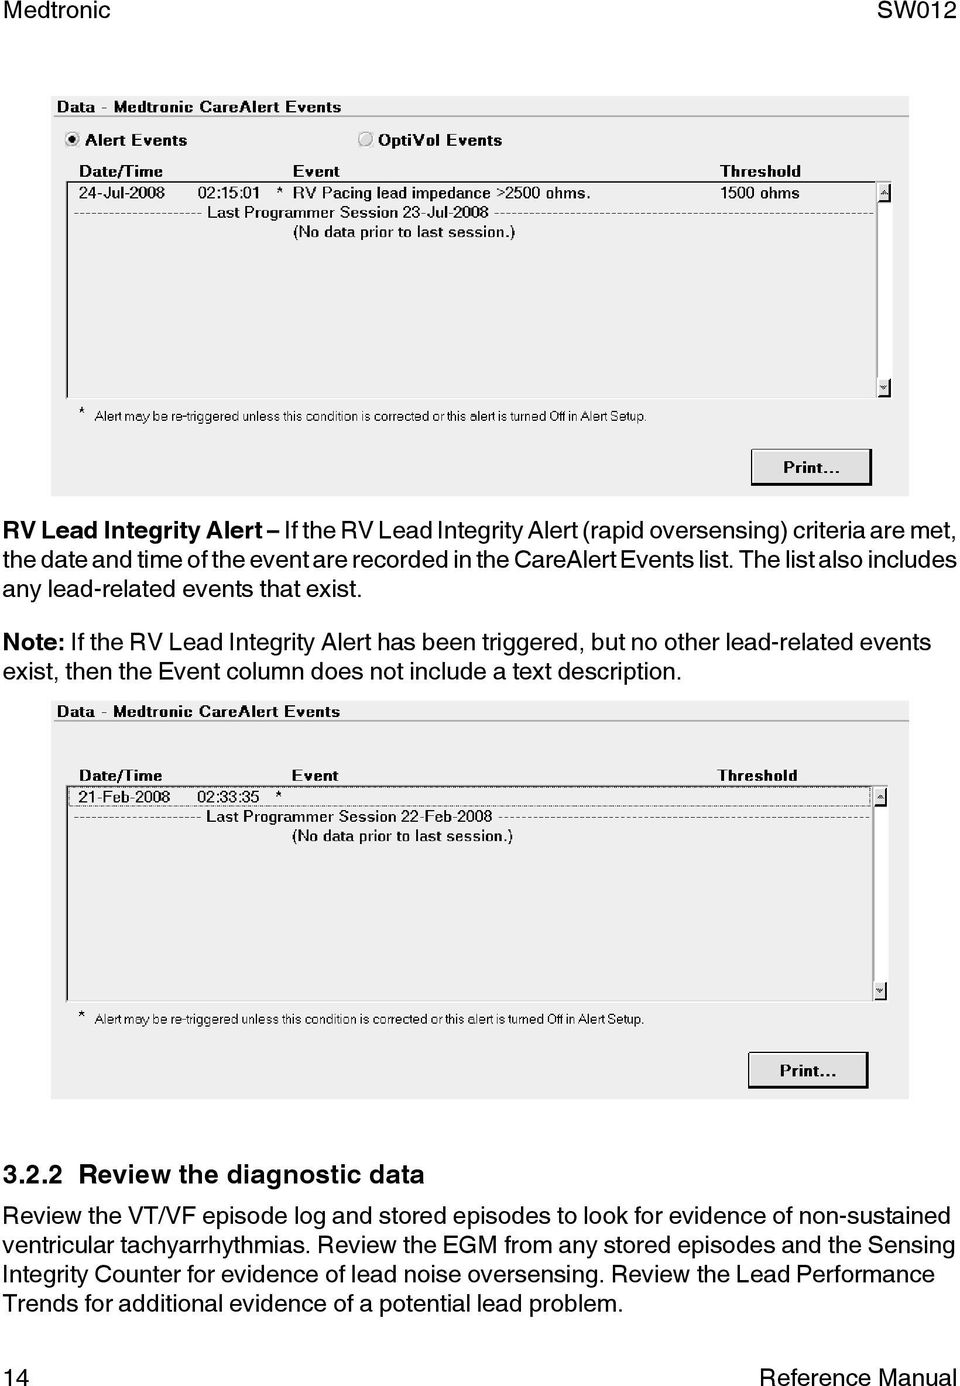 Note: If the RV Lead Integrity Alert has been triggered, but no other lead-related events exist, then the Event column does not include a text description. 3.2.